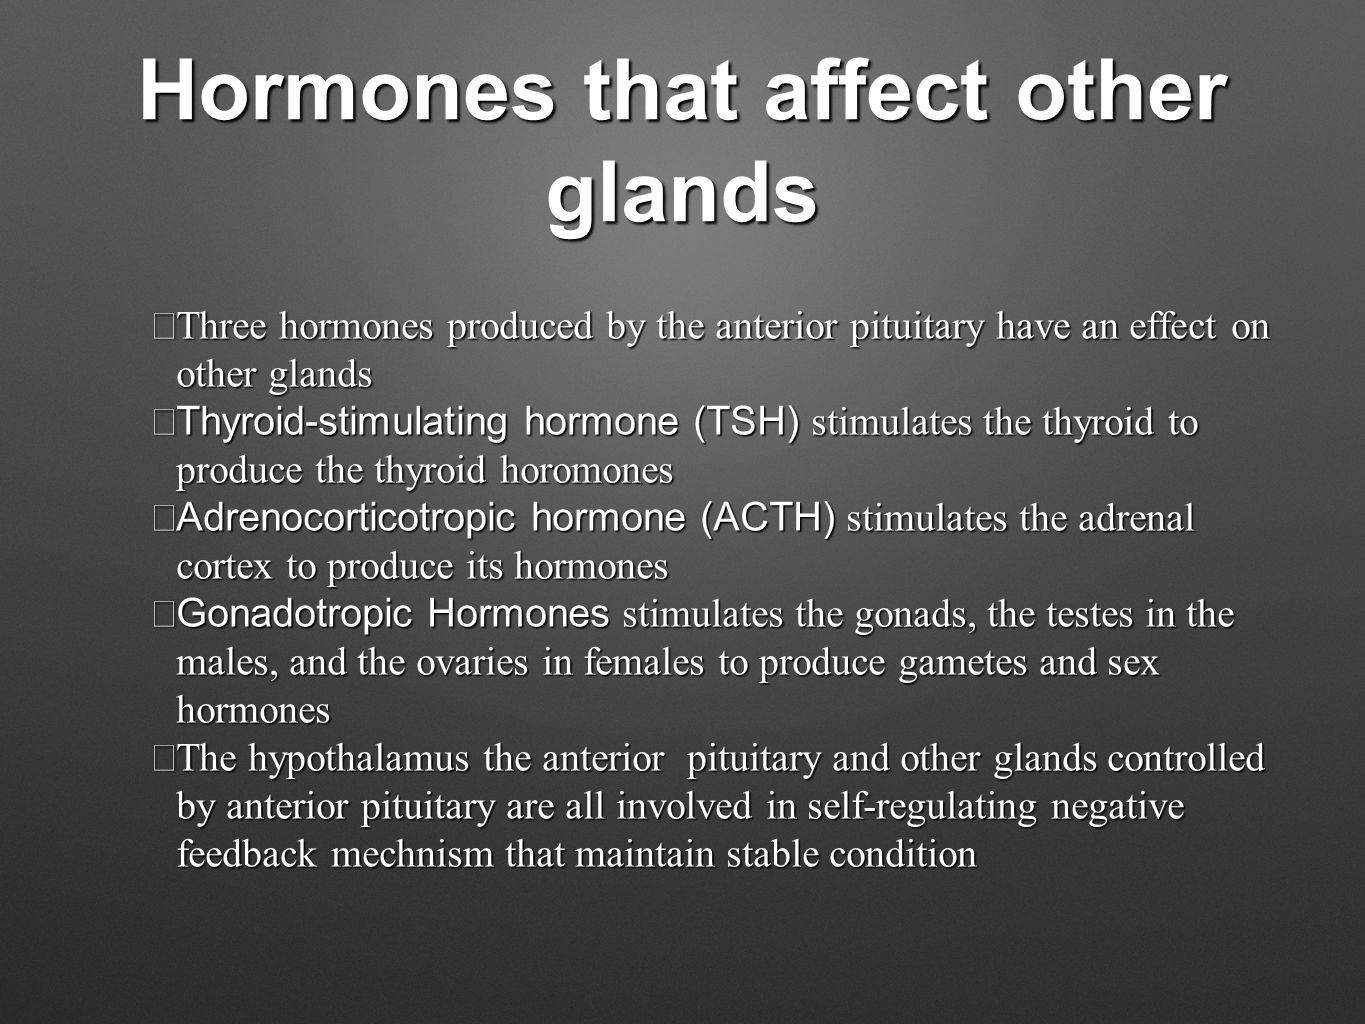 Hormones that affect other glands